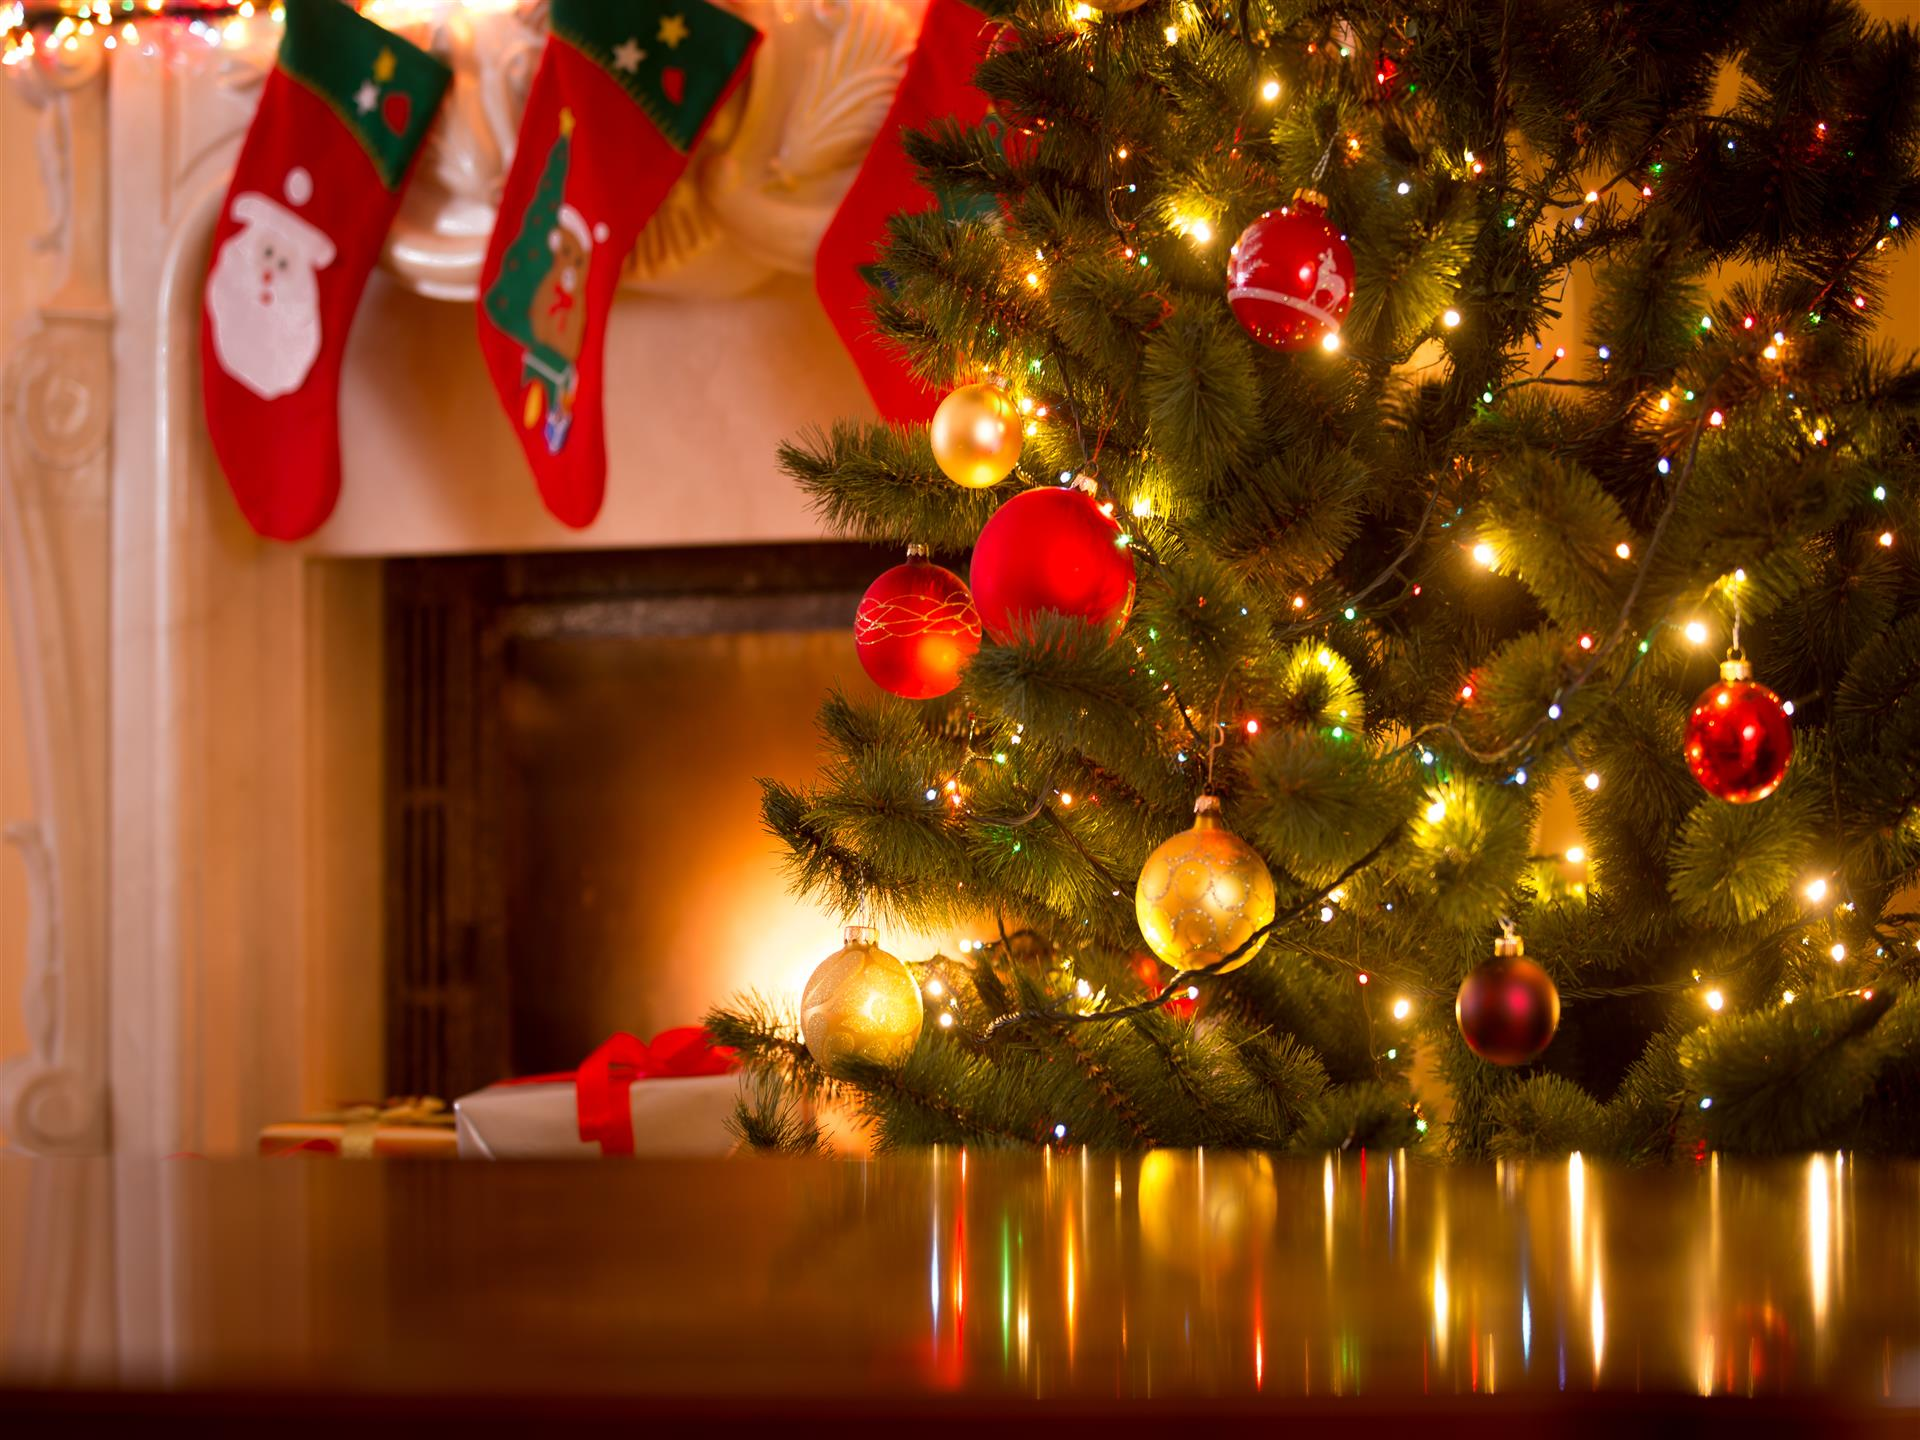 Christmas tree with a fireplace mantle in the background with stockings hanging.